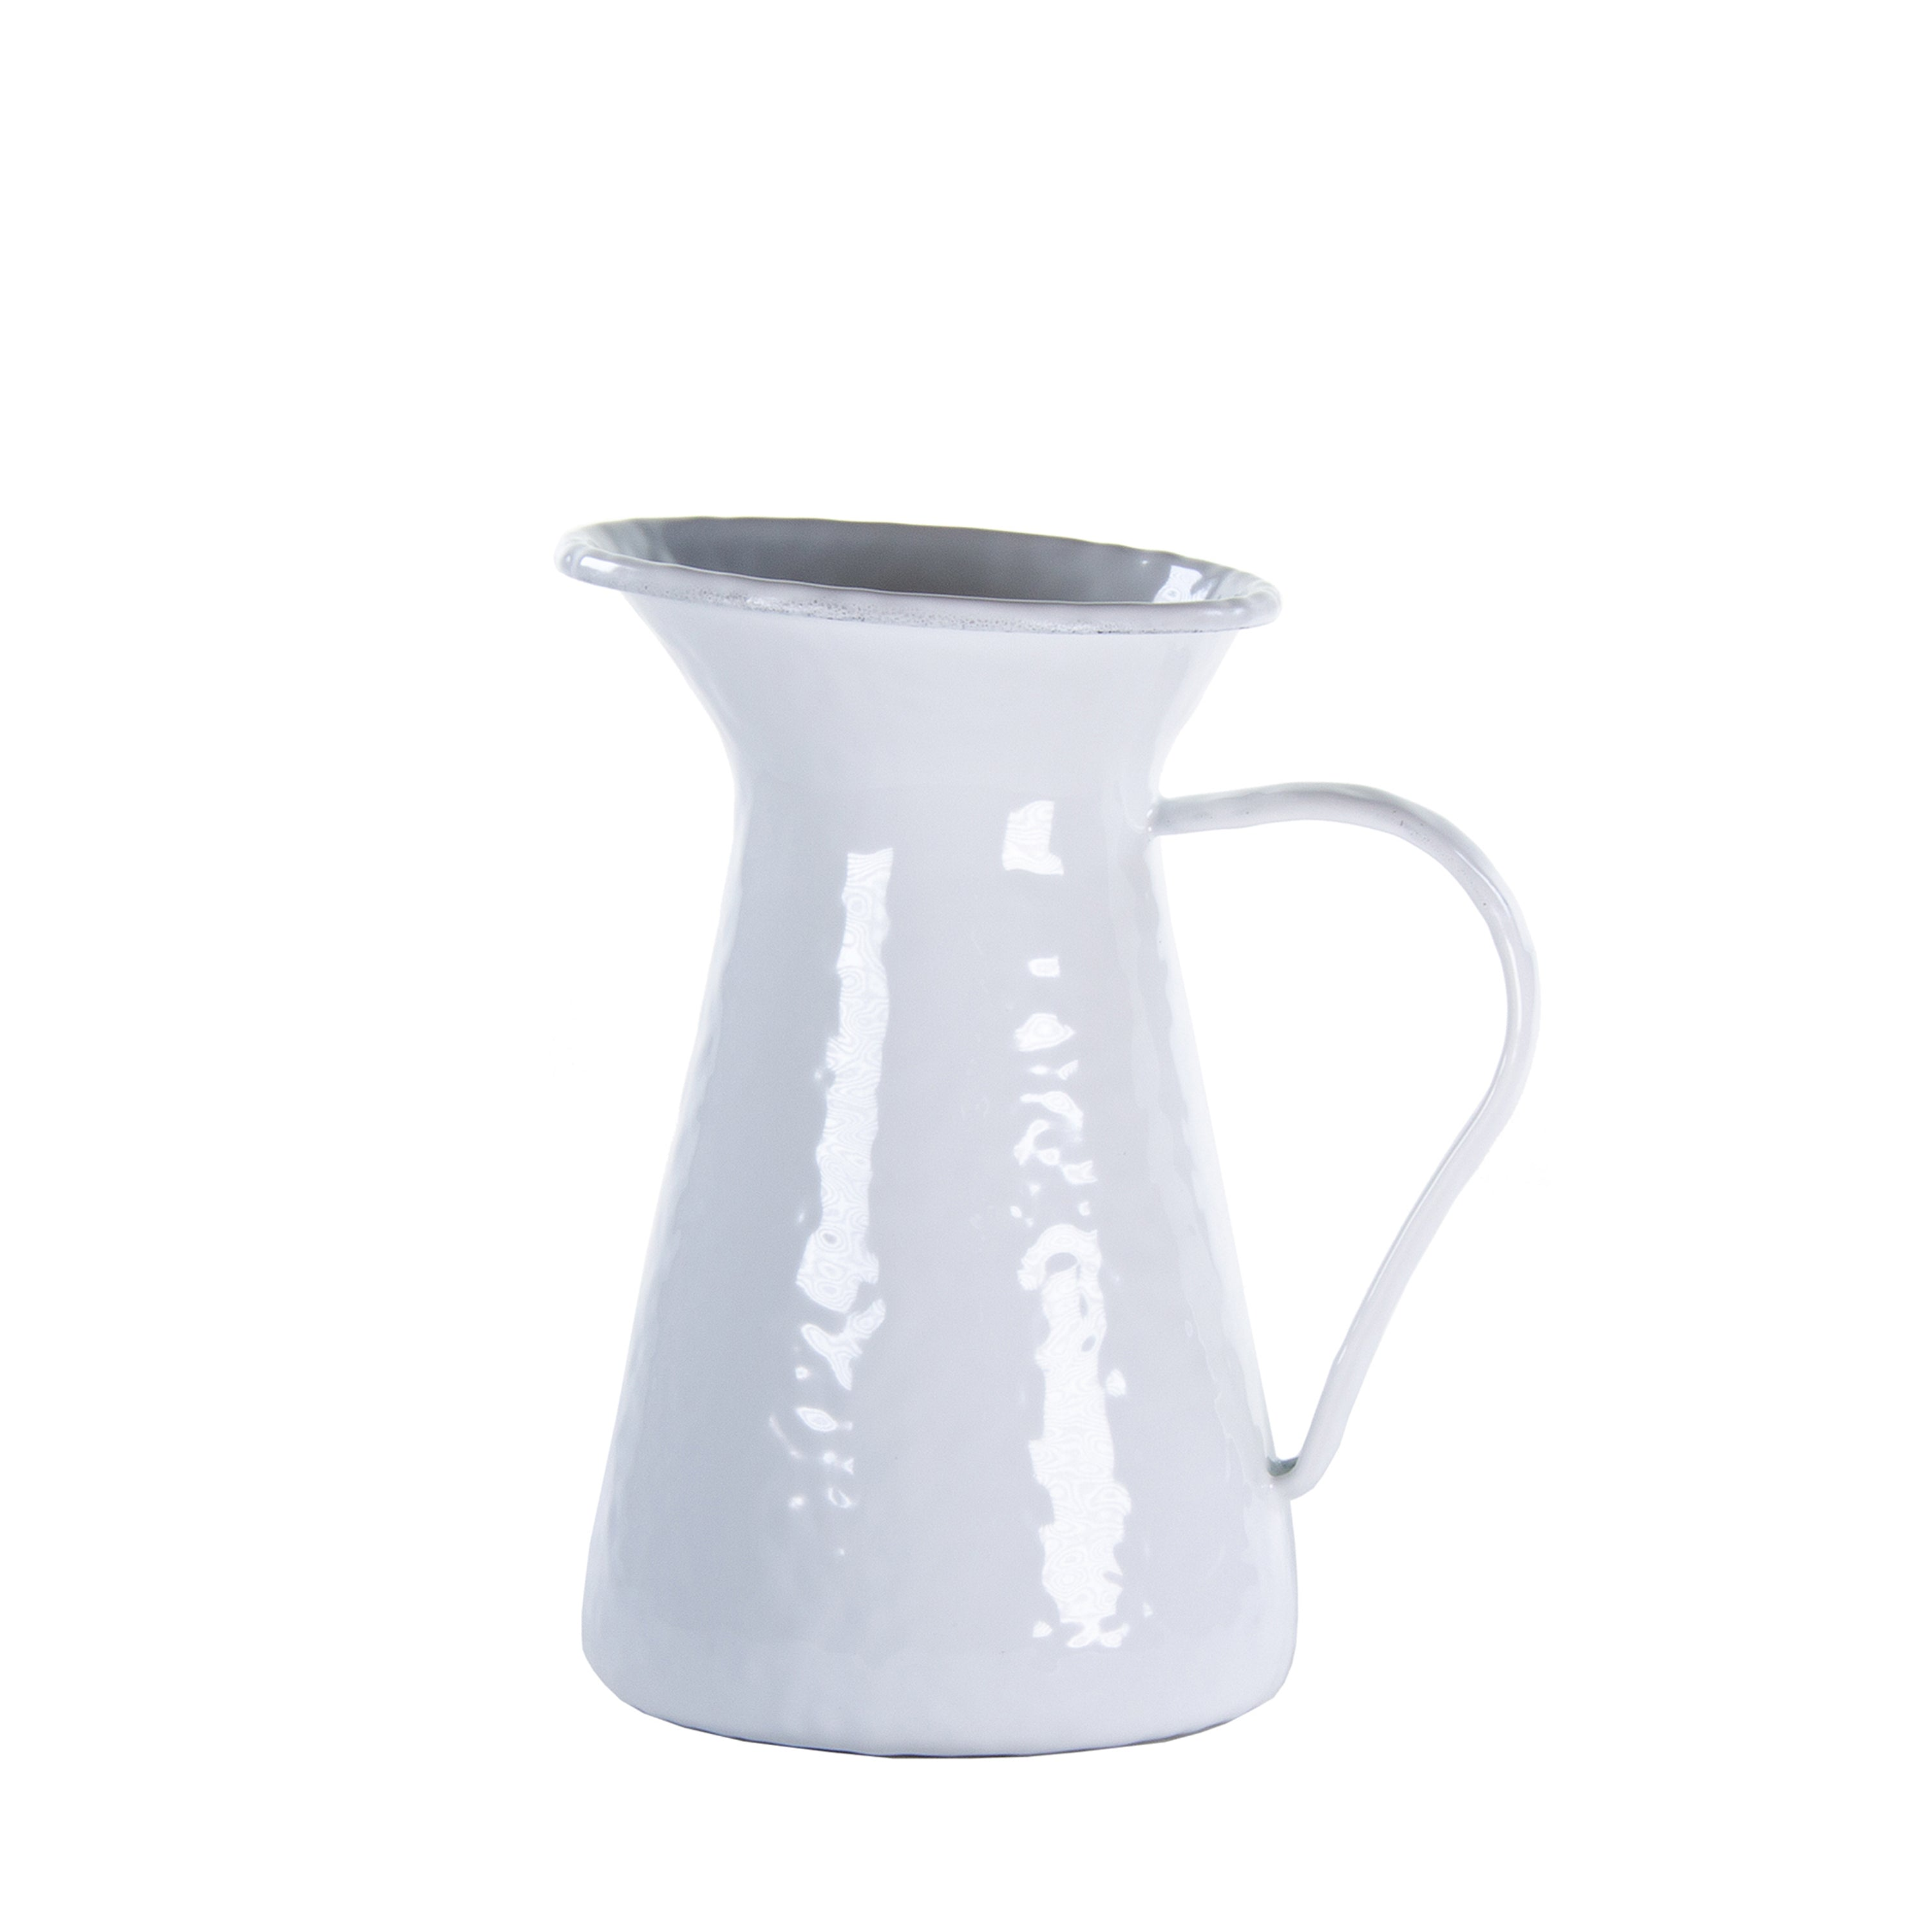 WW33 - Solid White Small Pitcher Product 1